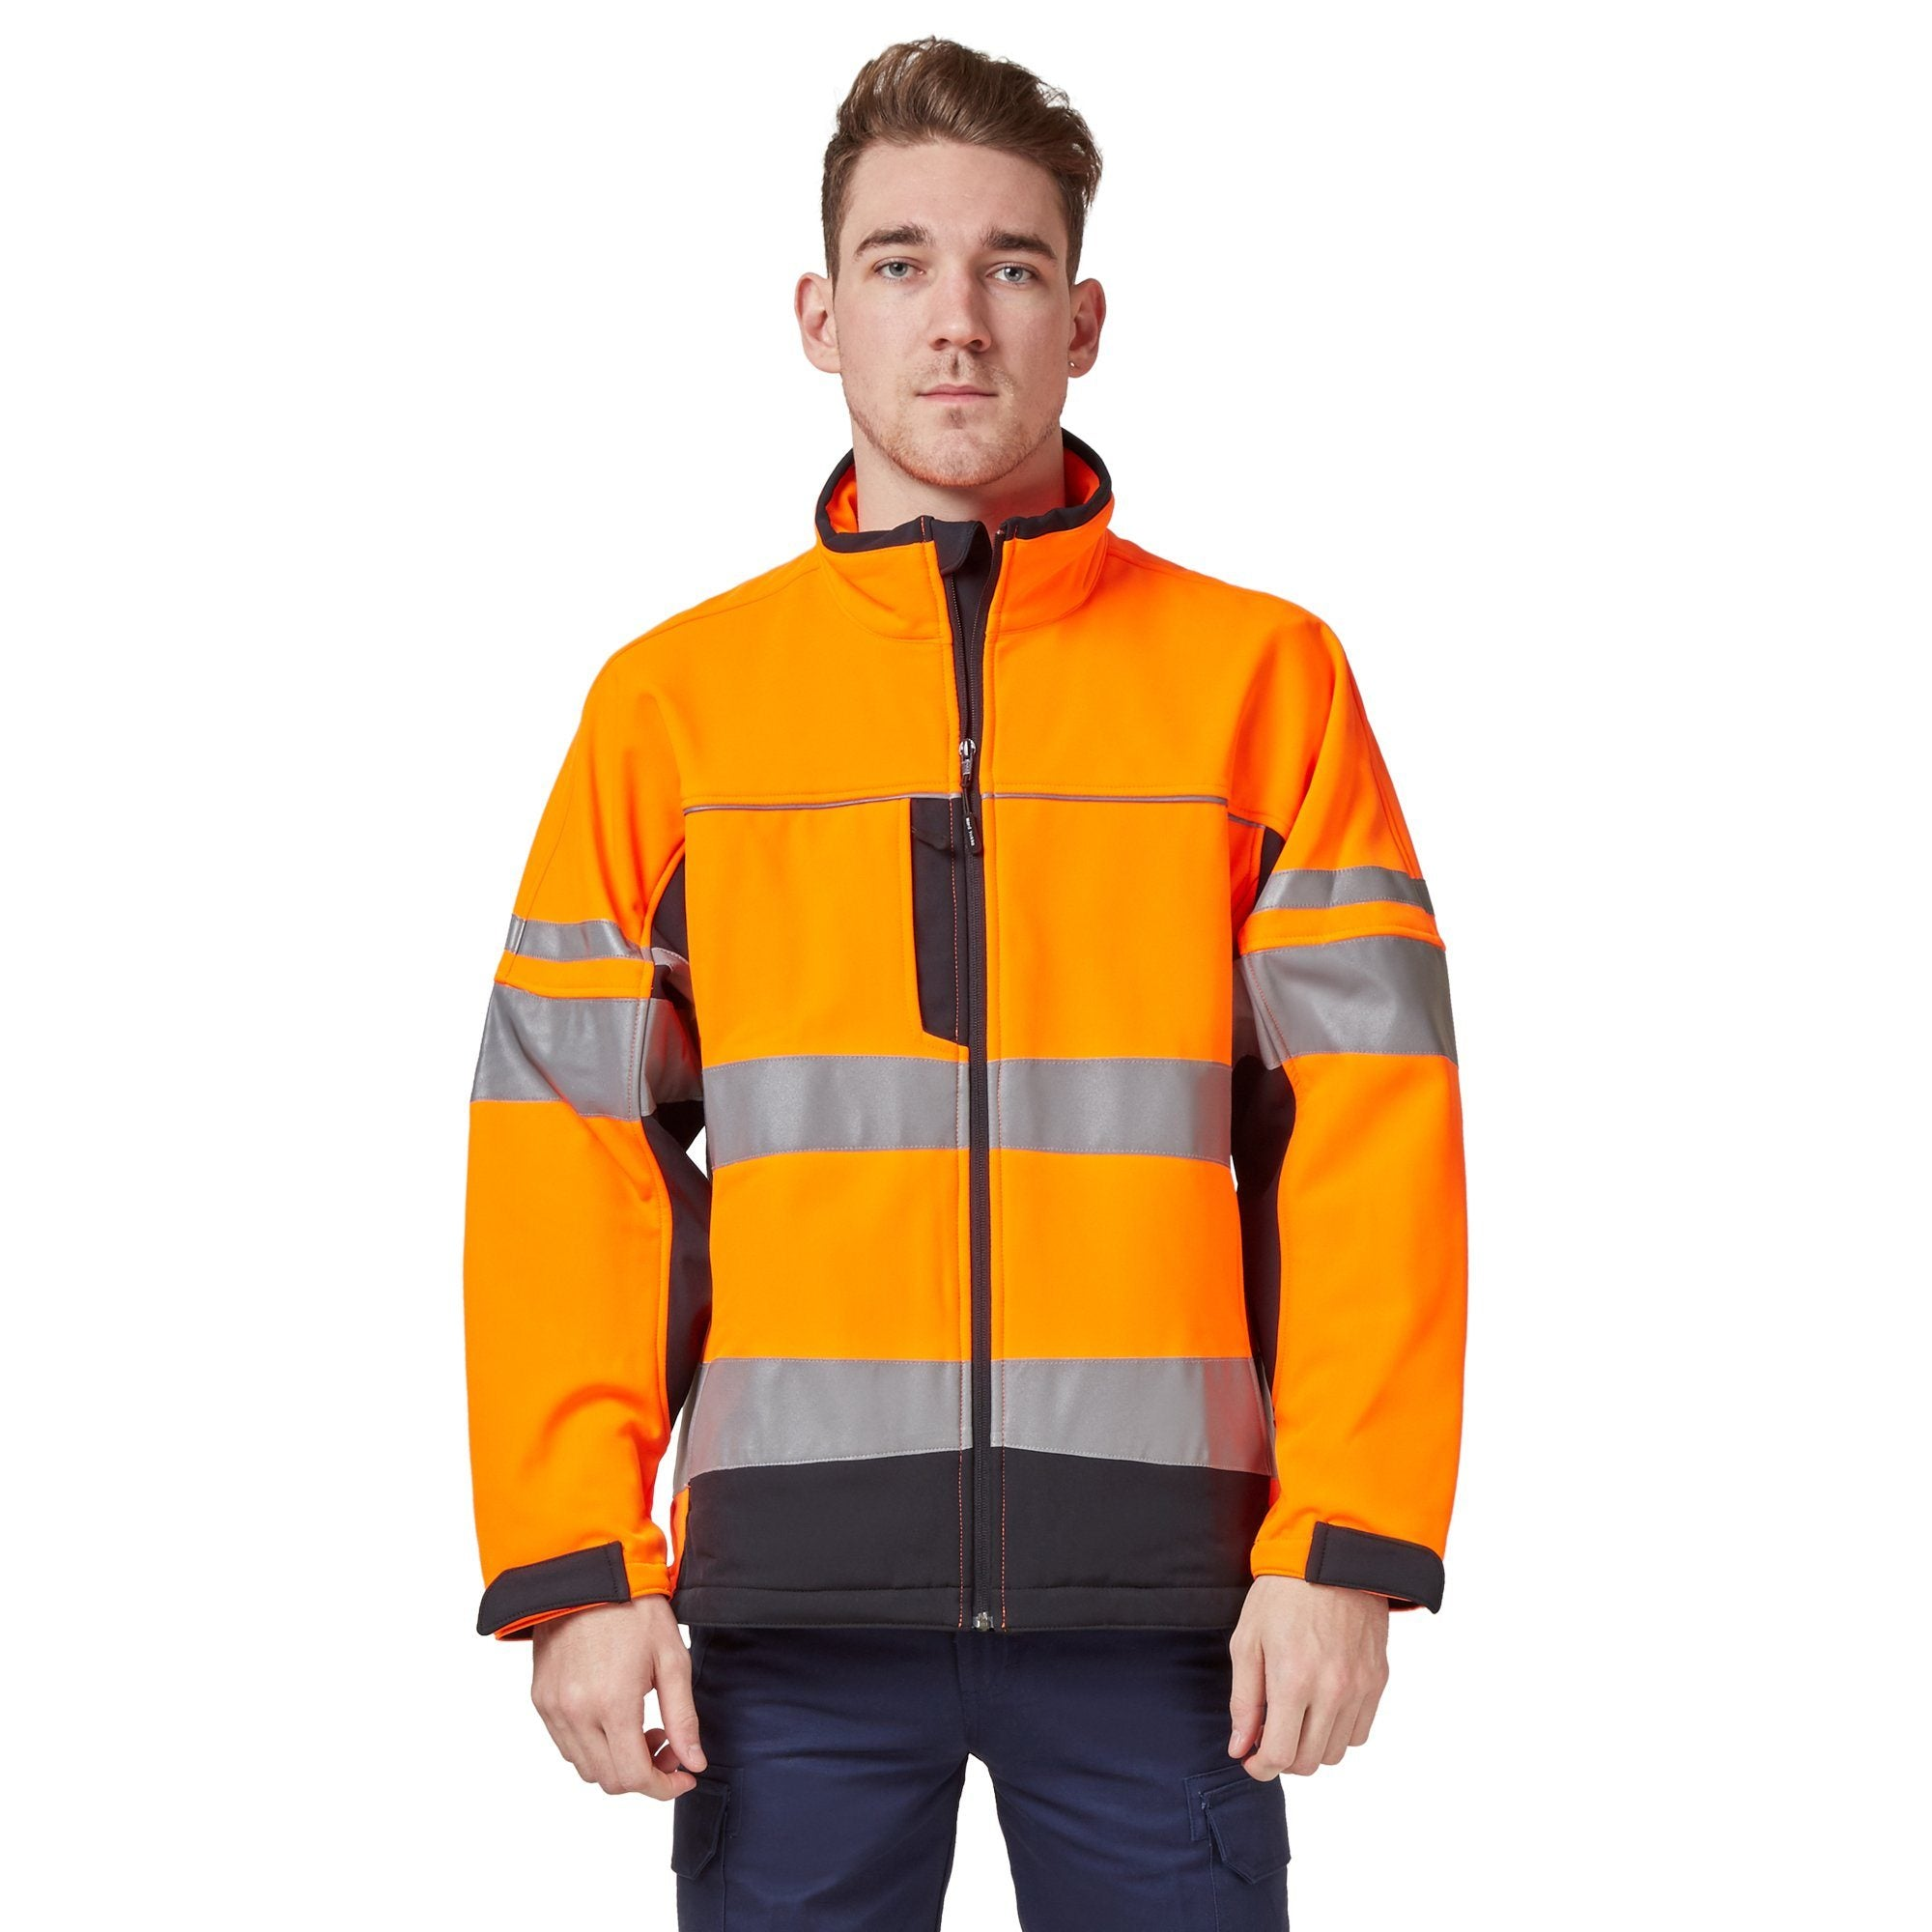 Hard Yakka Men's Hi-Vis Two-Tone Long Sleeve Soft Shell Jacket - Orange/Navy Workwear Isbister & Co Wholesale